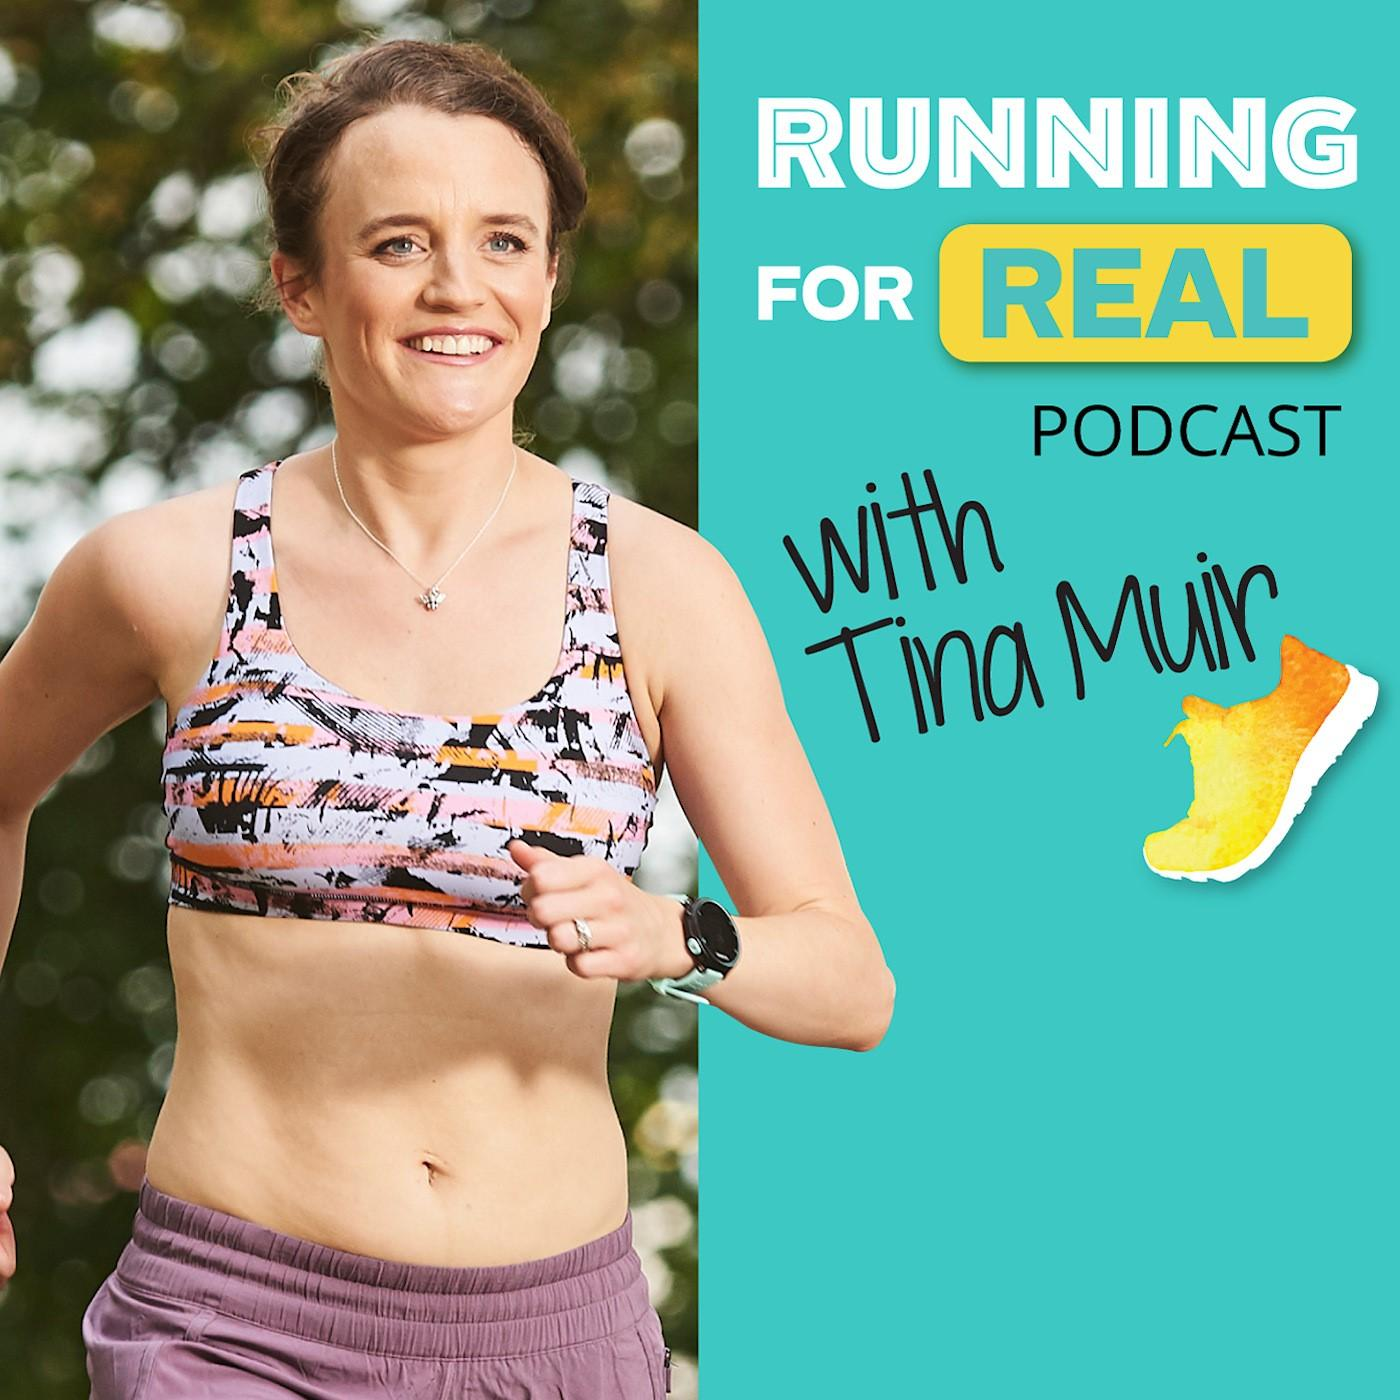 Pete Magill: It's Impossible To Run Fast If You Train Incorrectly -R4R 112